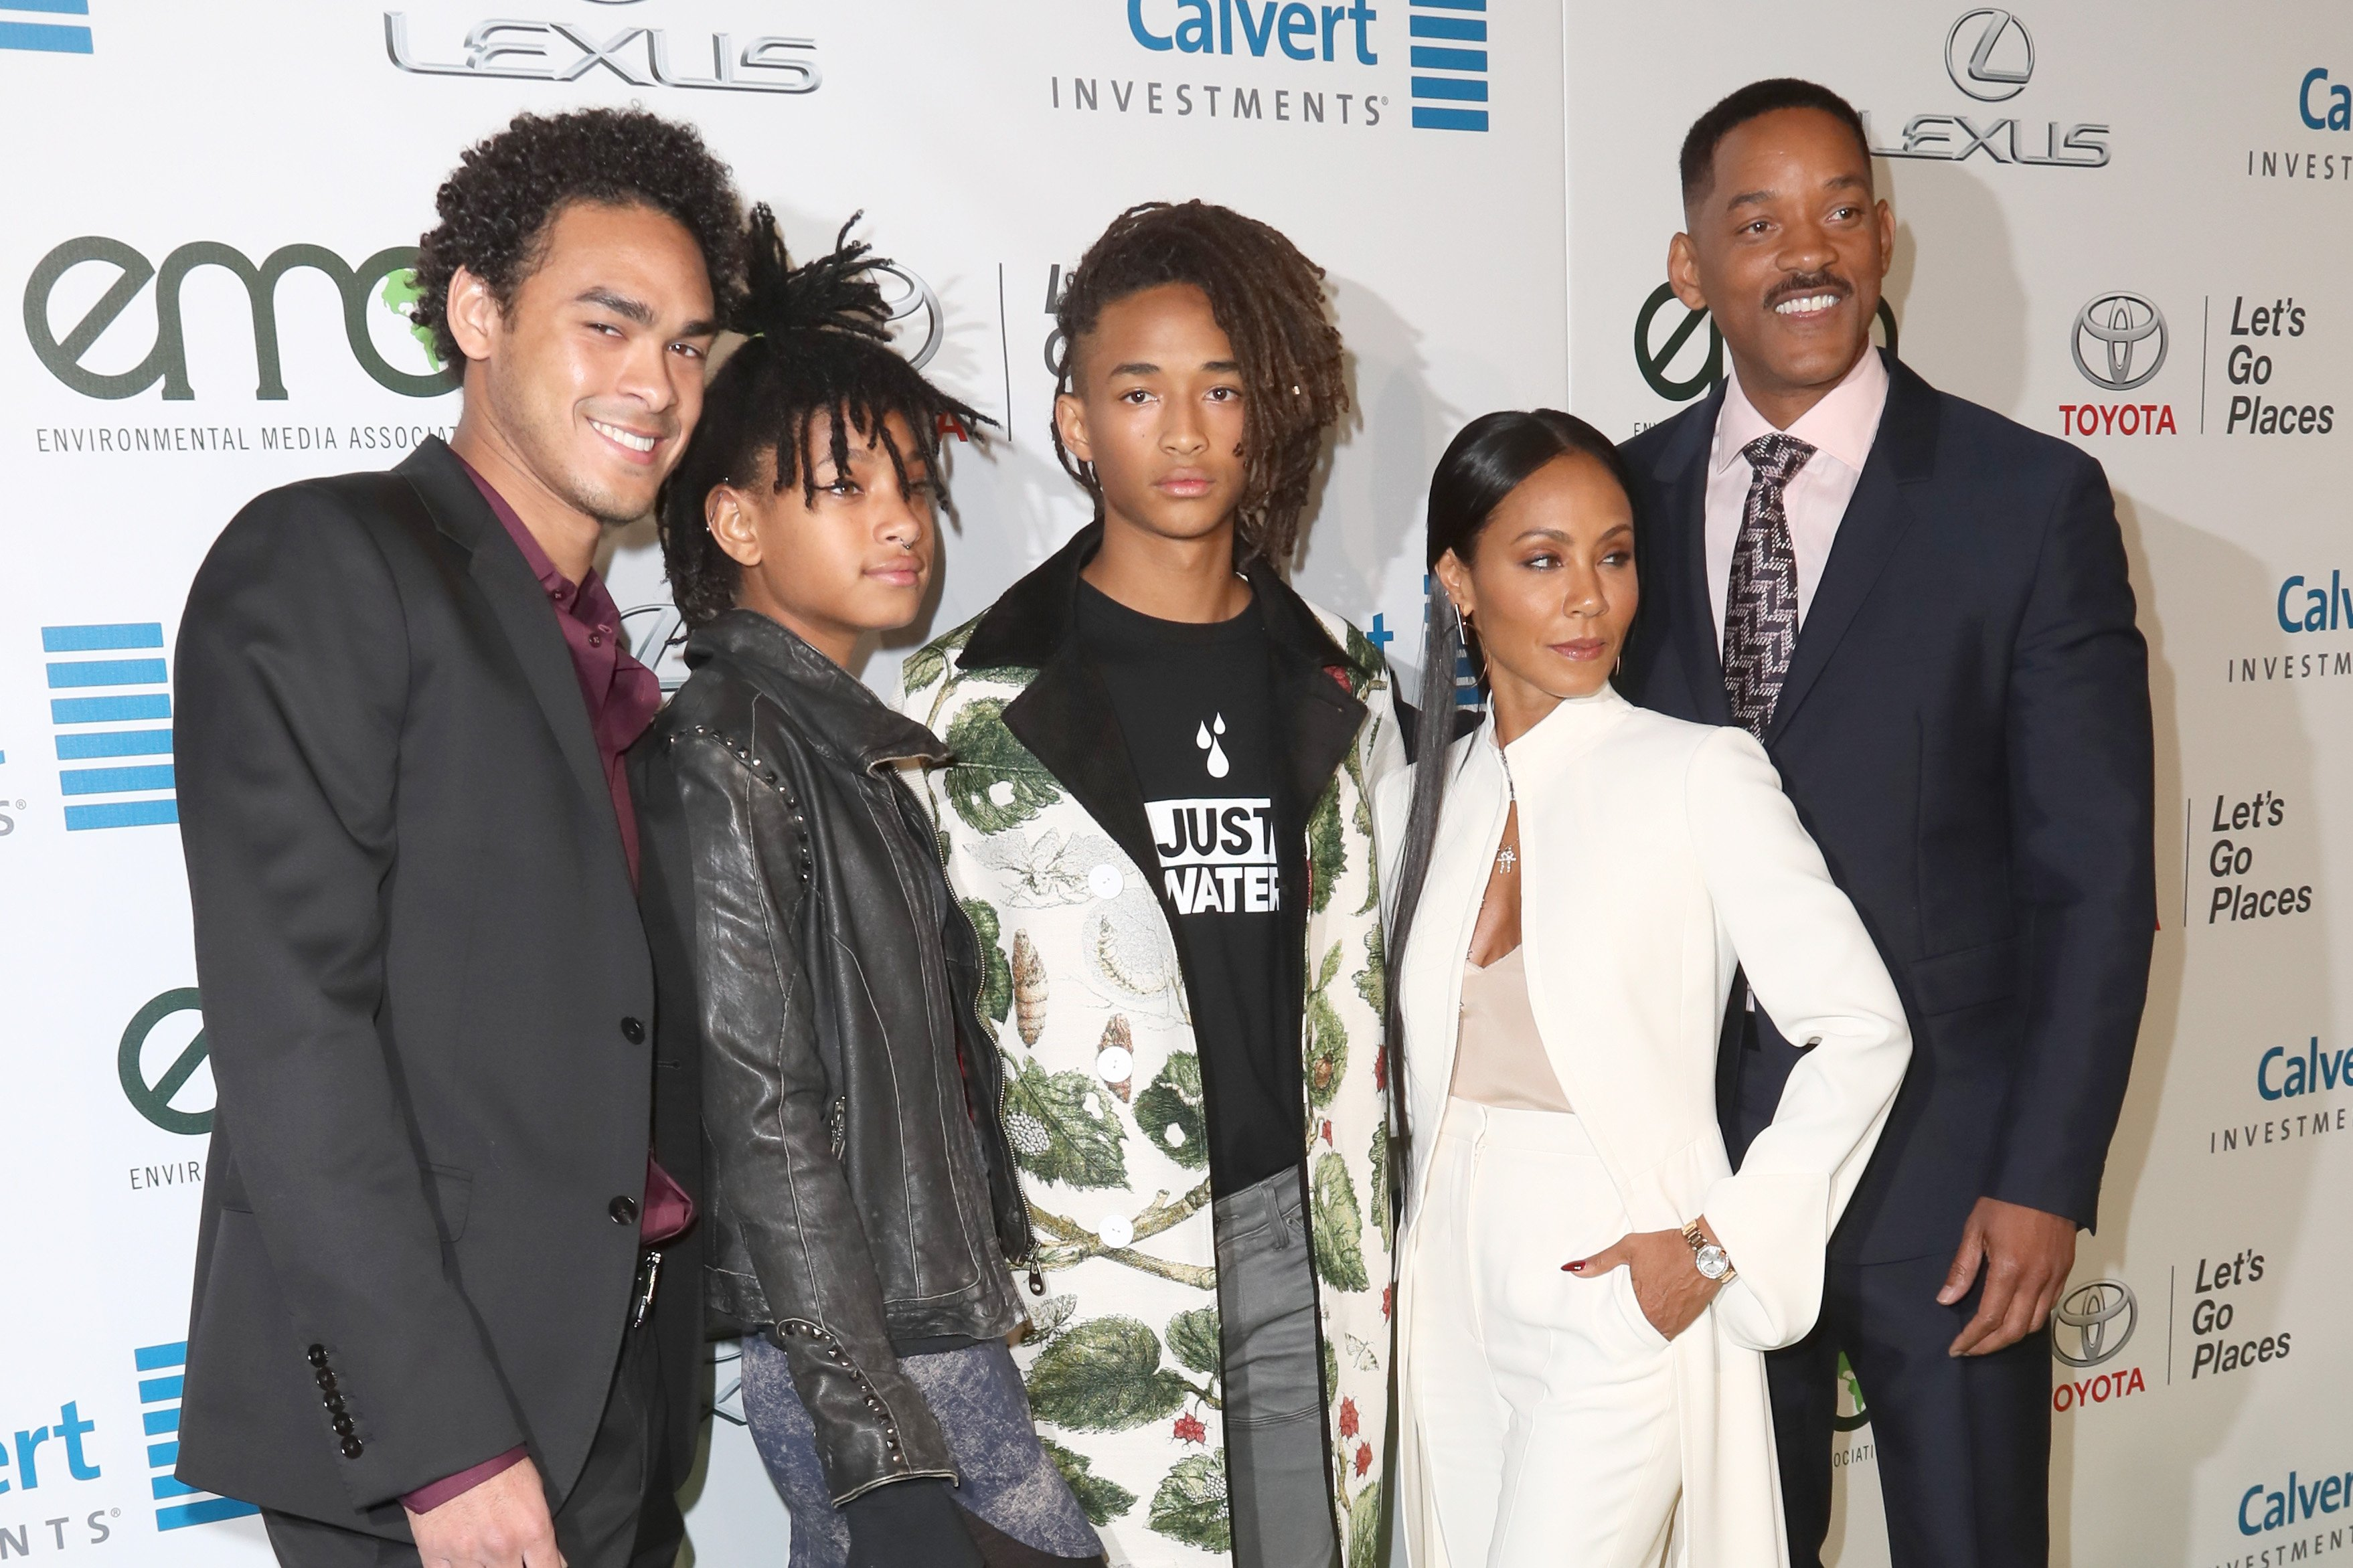 (L-R)Trey Smith, Willow Smith, Jaden Smith, Jada Pinkett-Smith & Will Smith at the 26th Annual EMA Awards on Oct. 22, 2016 in California. |Photo: Getty Images